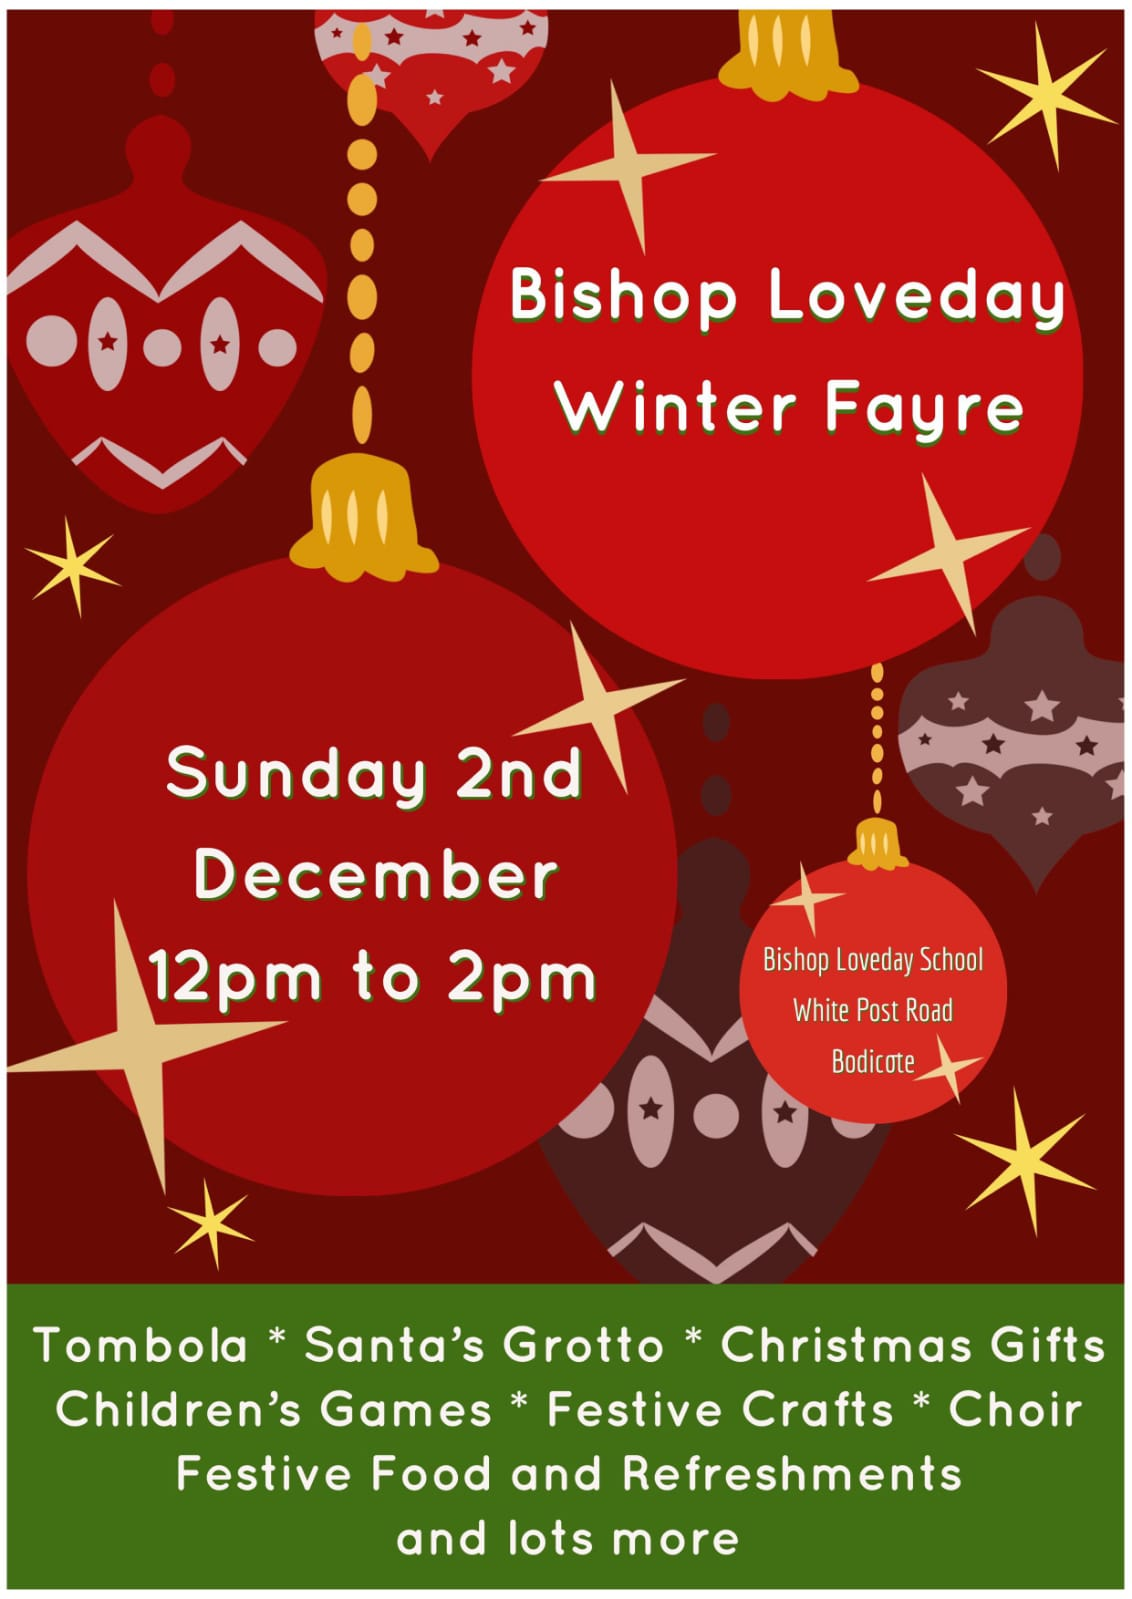 Winter fayre flyer